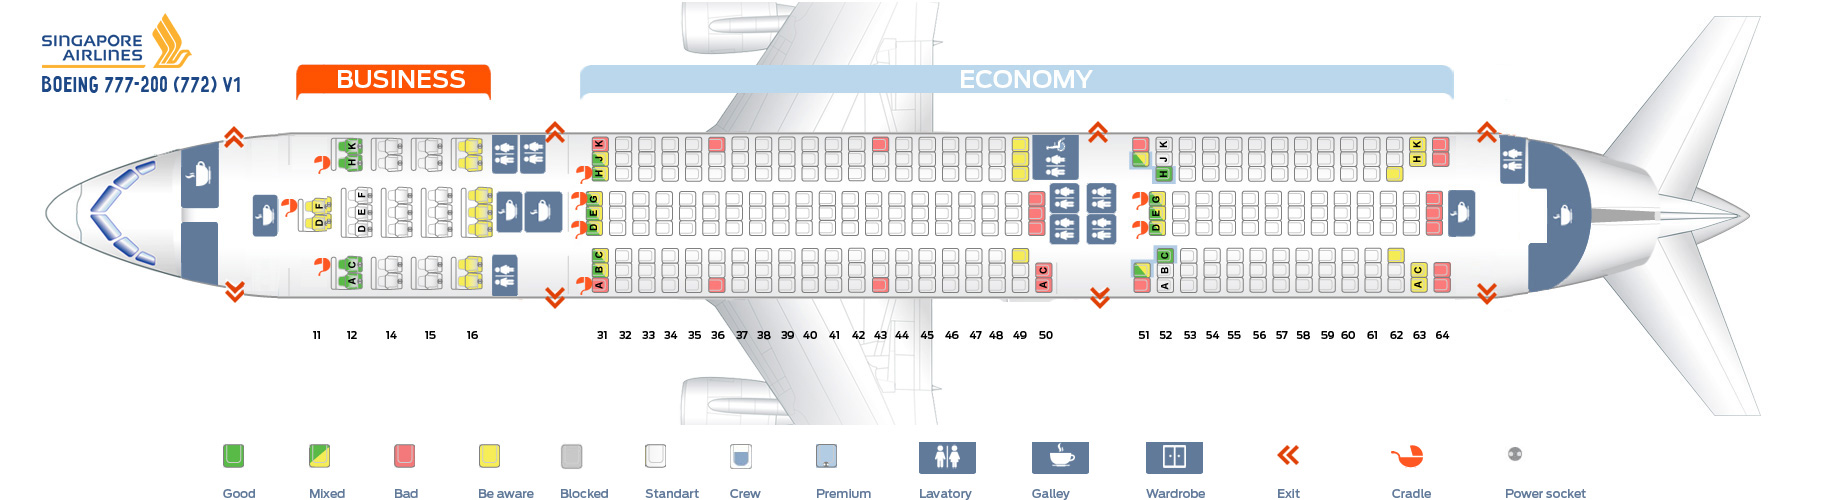 Seat Map Boeing 777-200 V1 Singapore Airlines